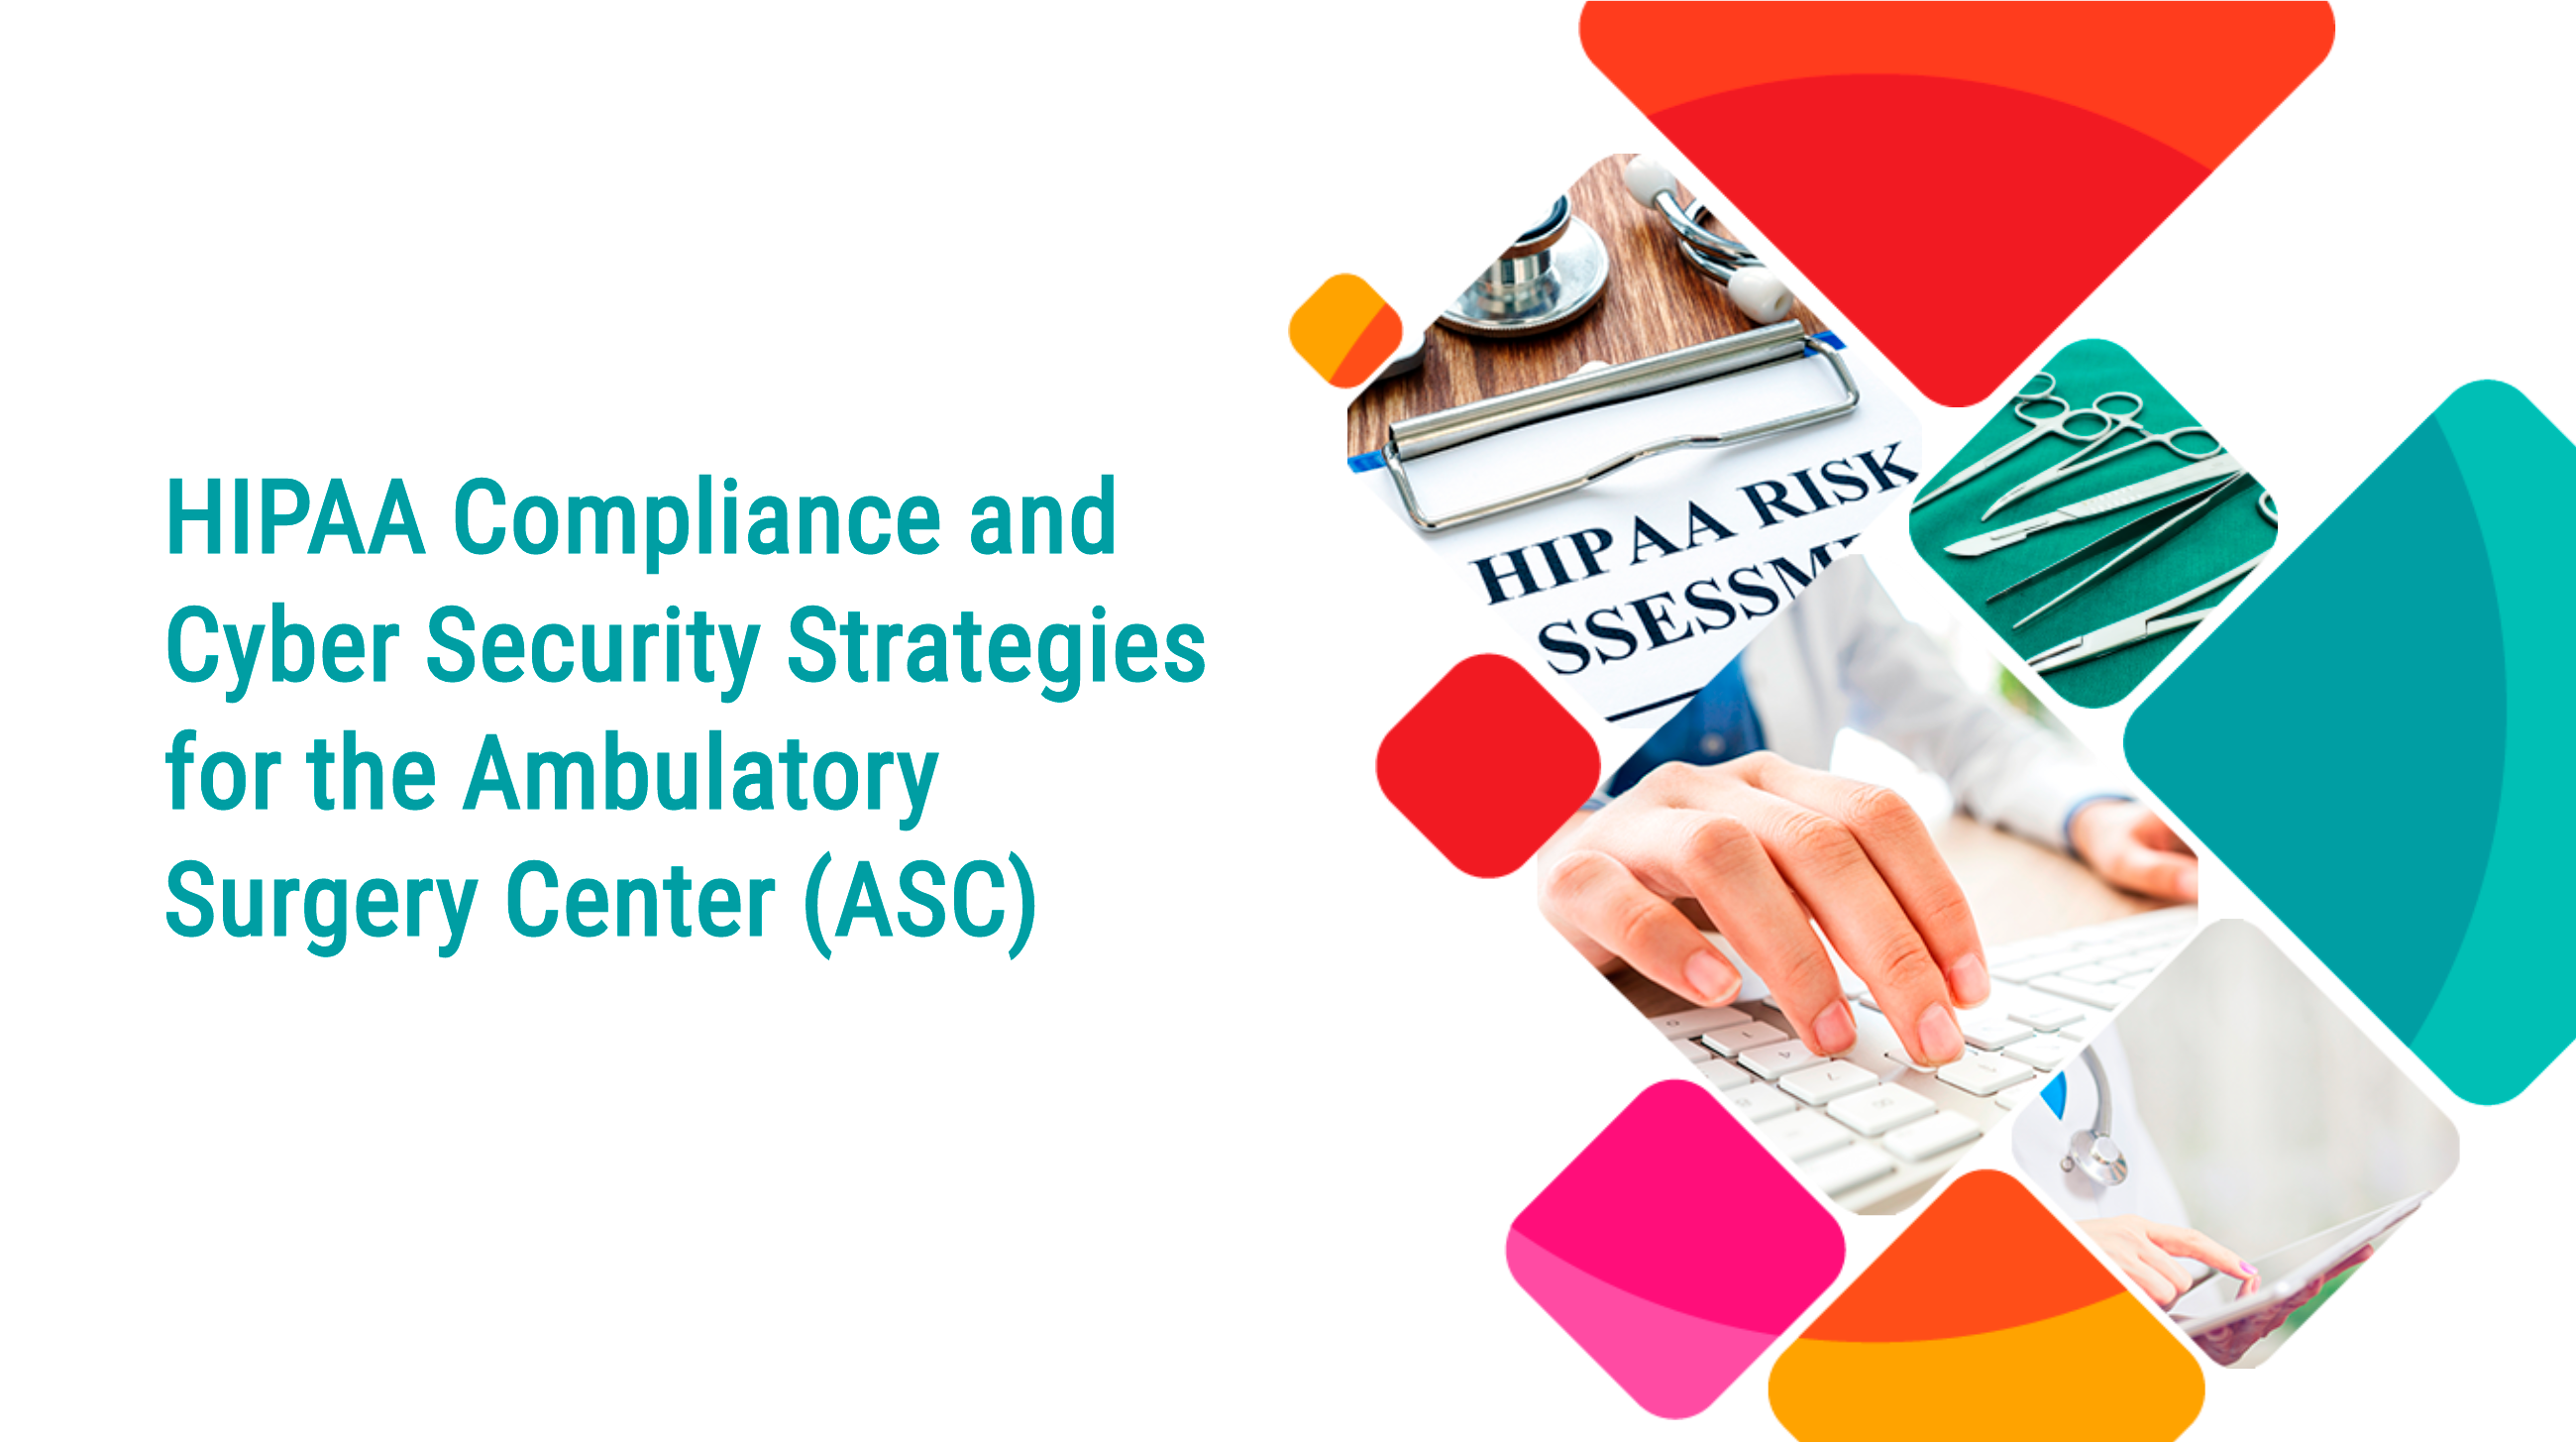 HIPAA Compliance and Cyber Security Protection Strategies for the ASC